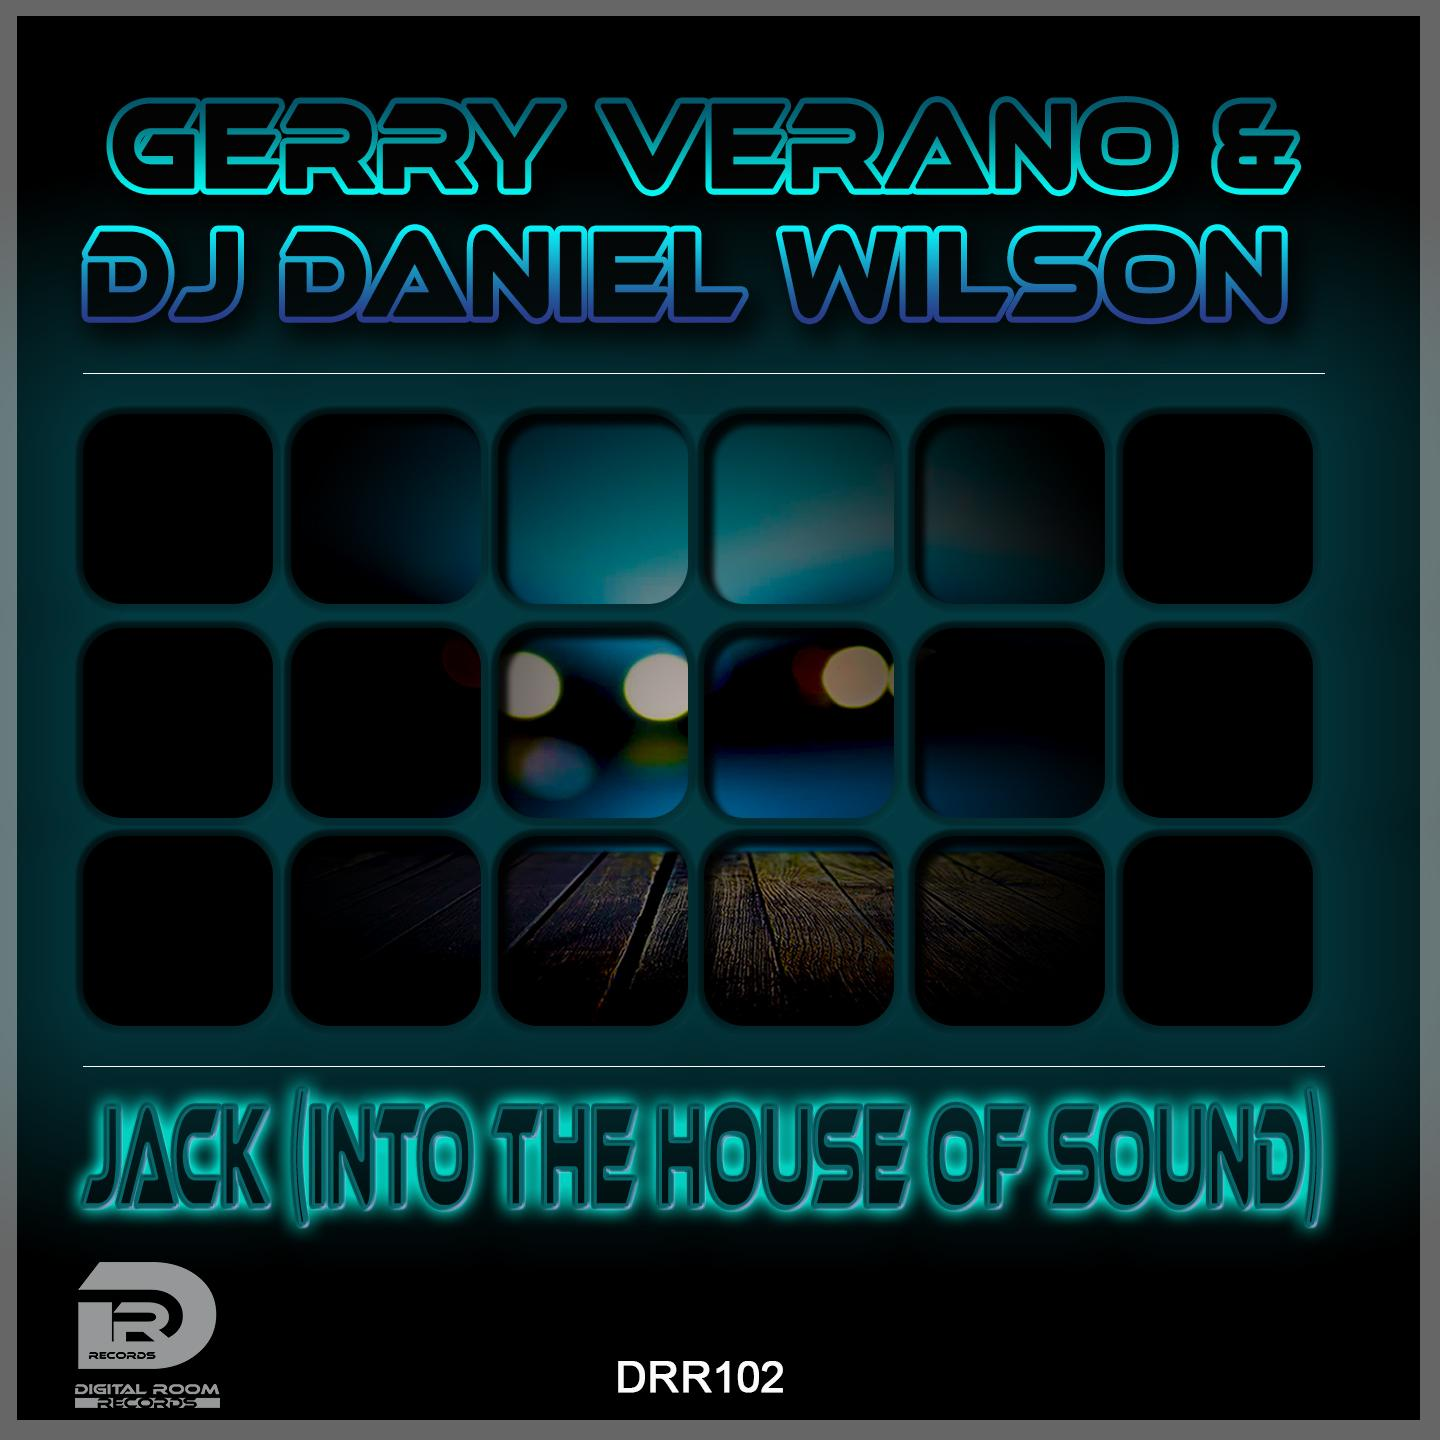 Jack (Into the House of Sound)(Original Mix)